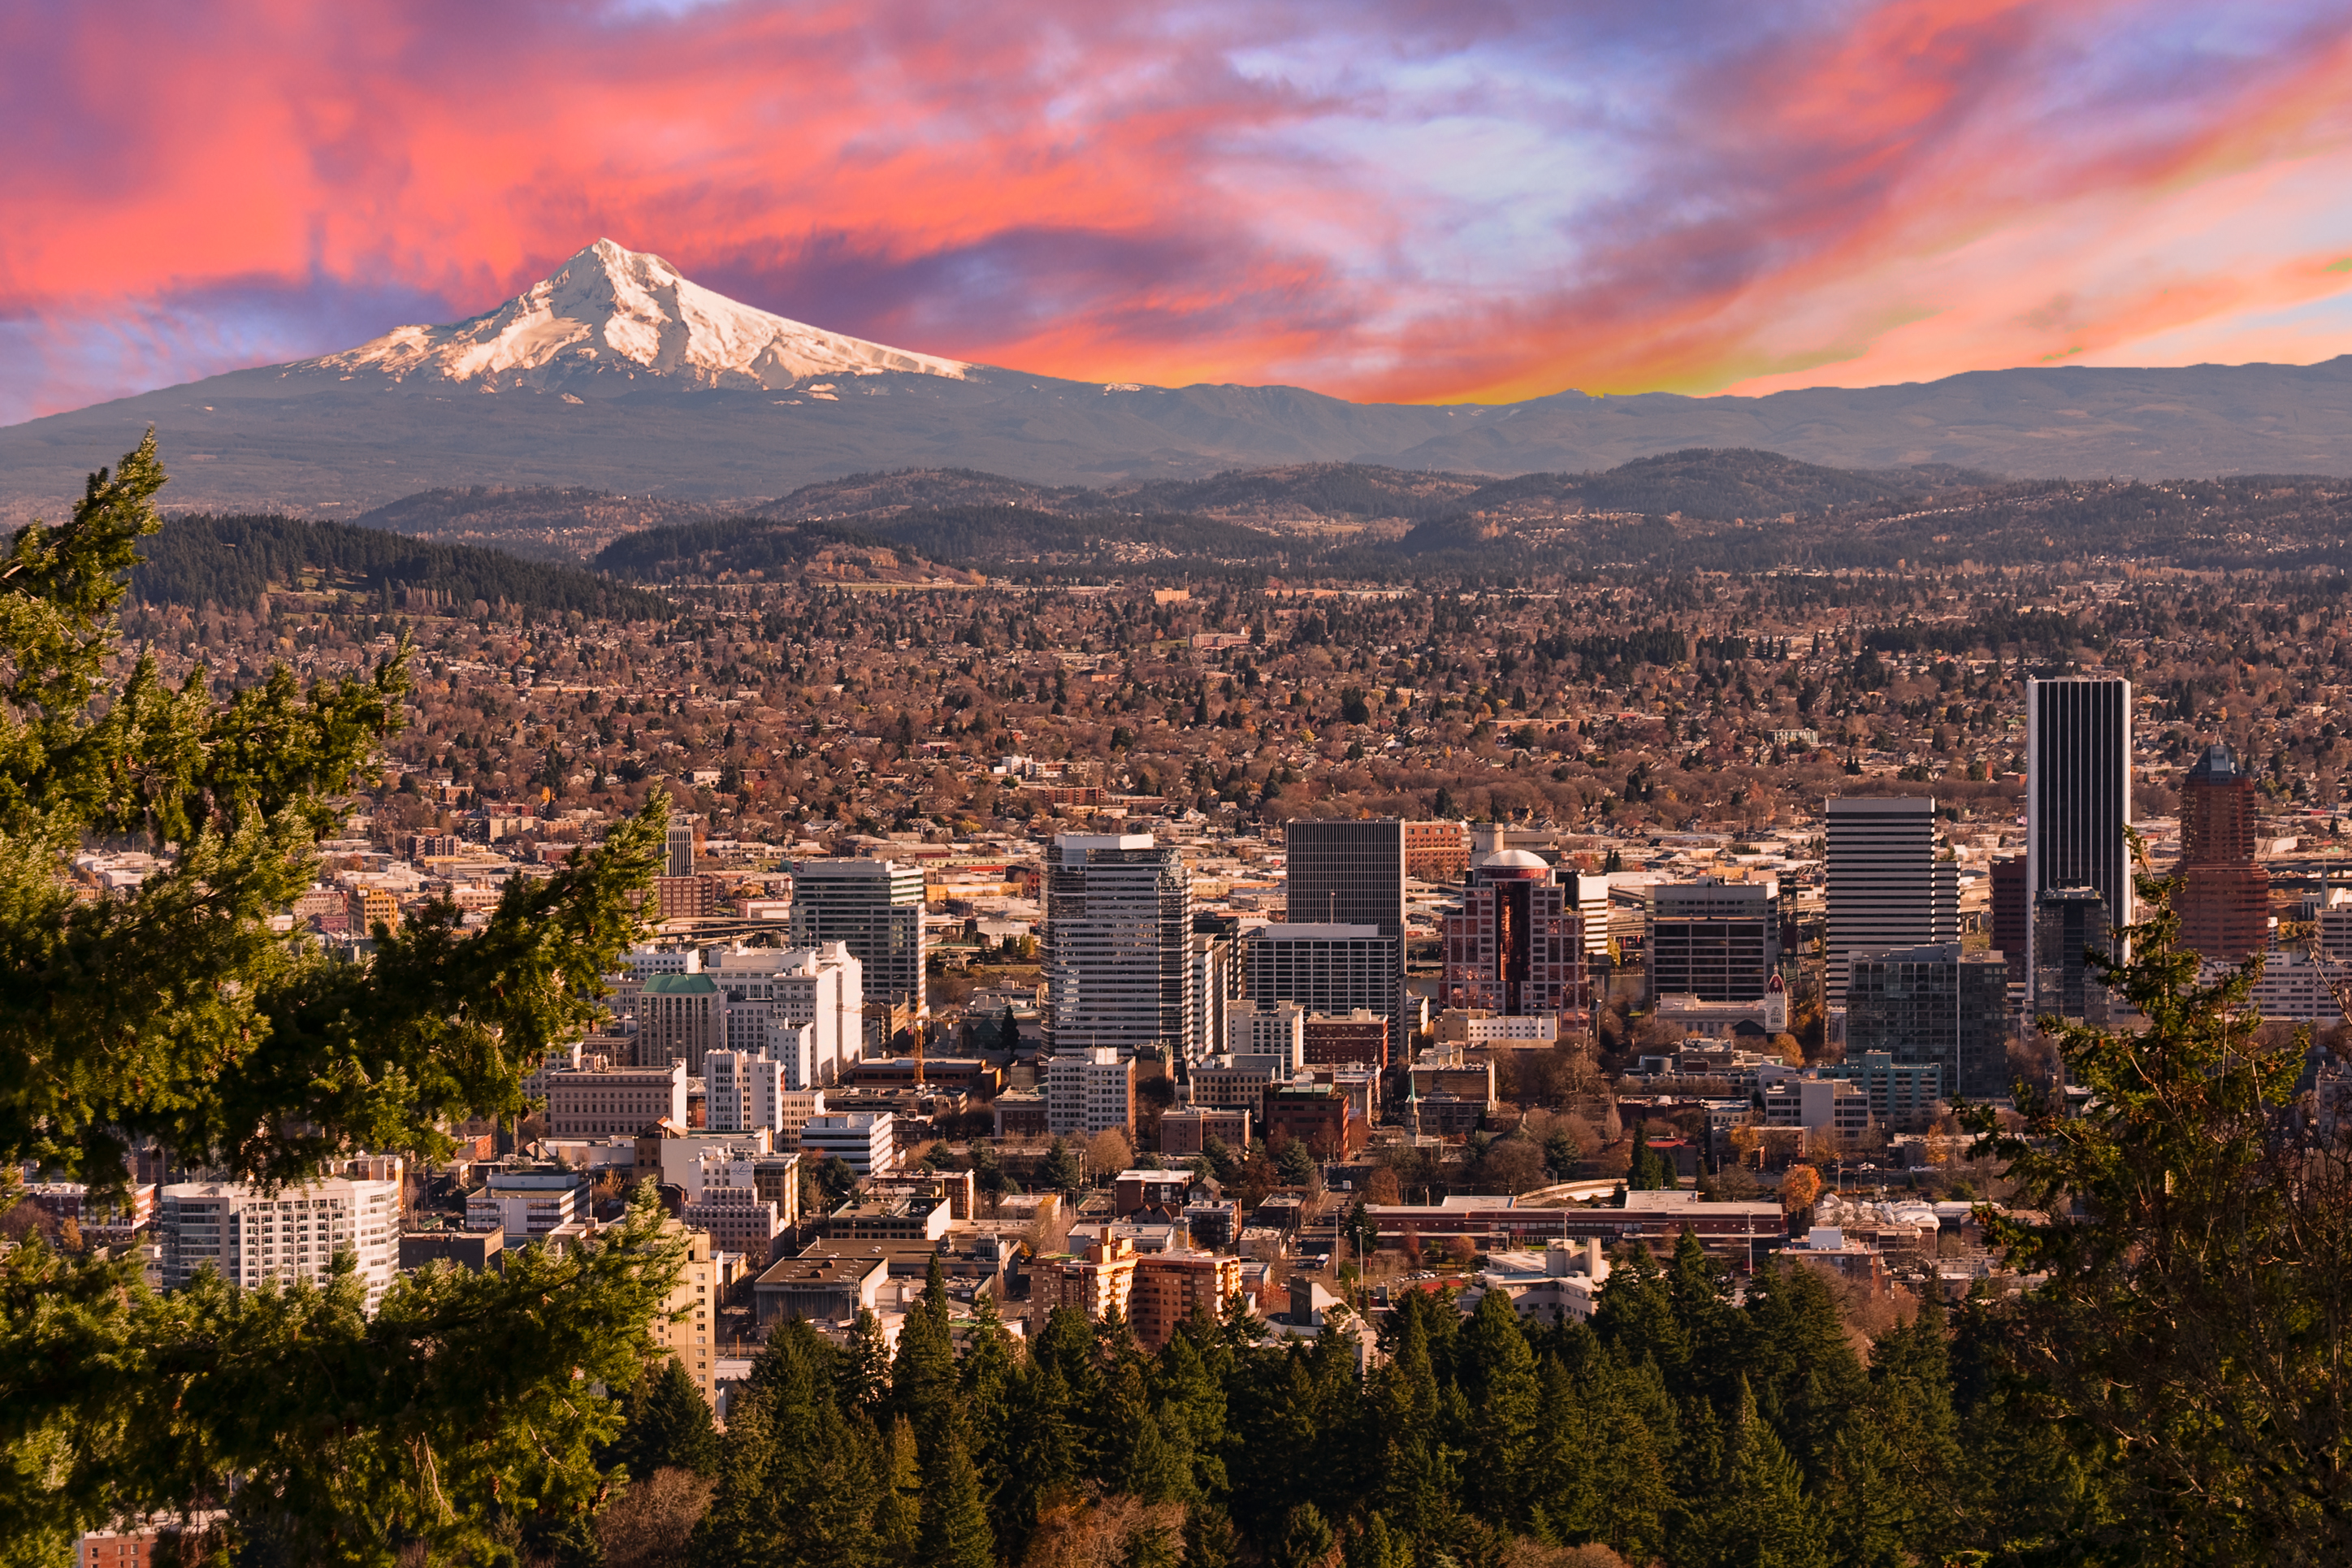 Portland skyline at sunset with Mt. Hood in background